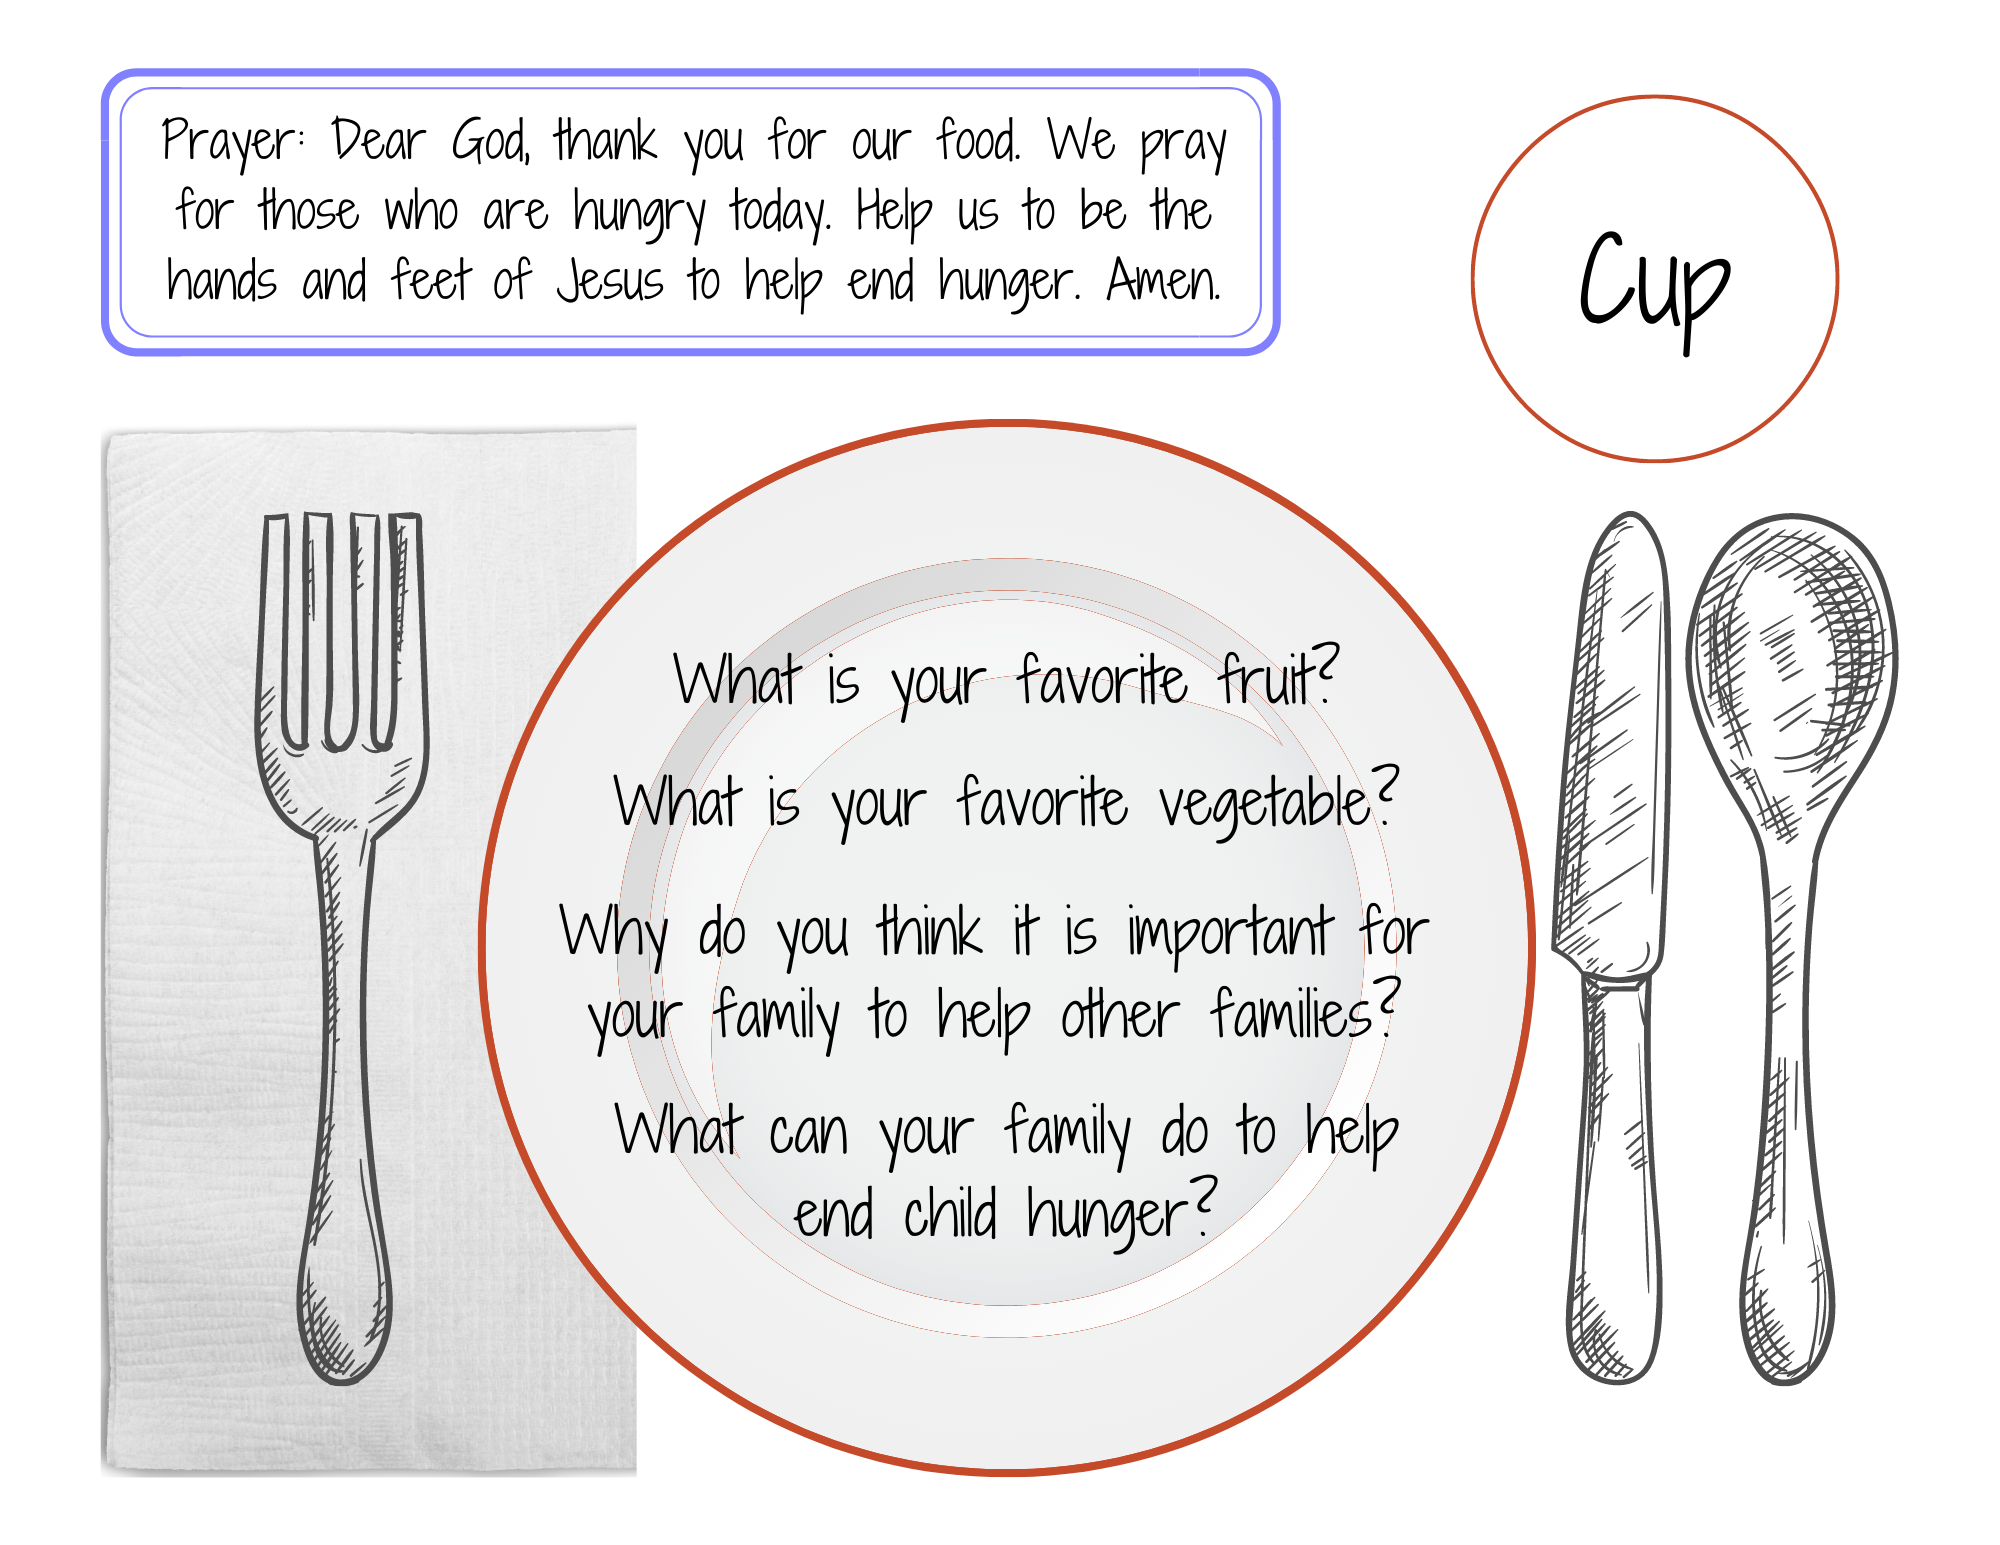 placemat with prayer and questions